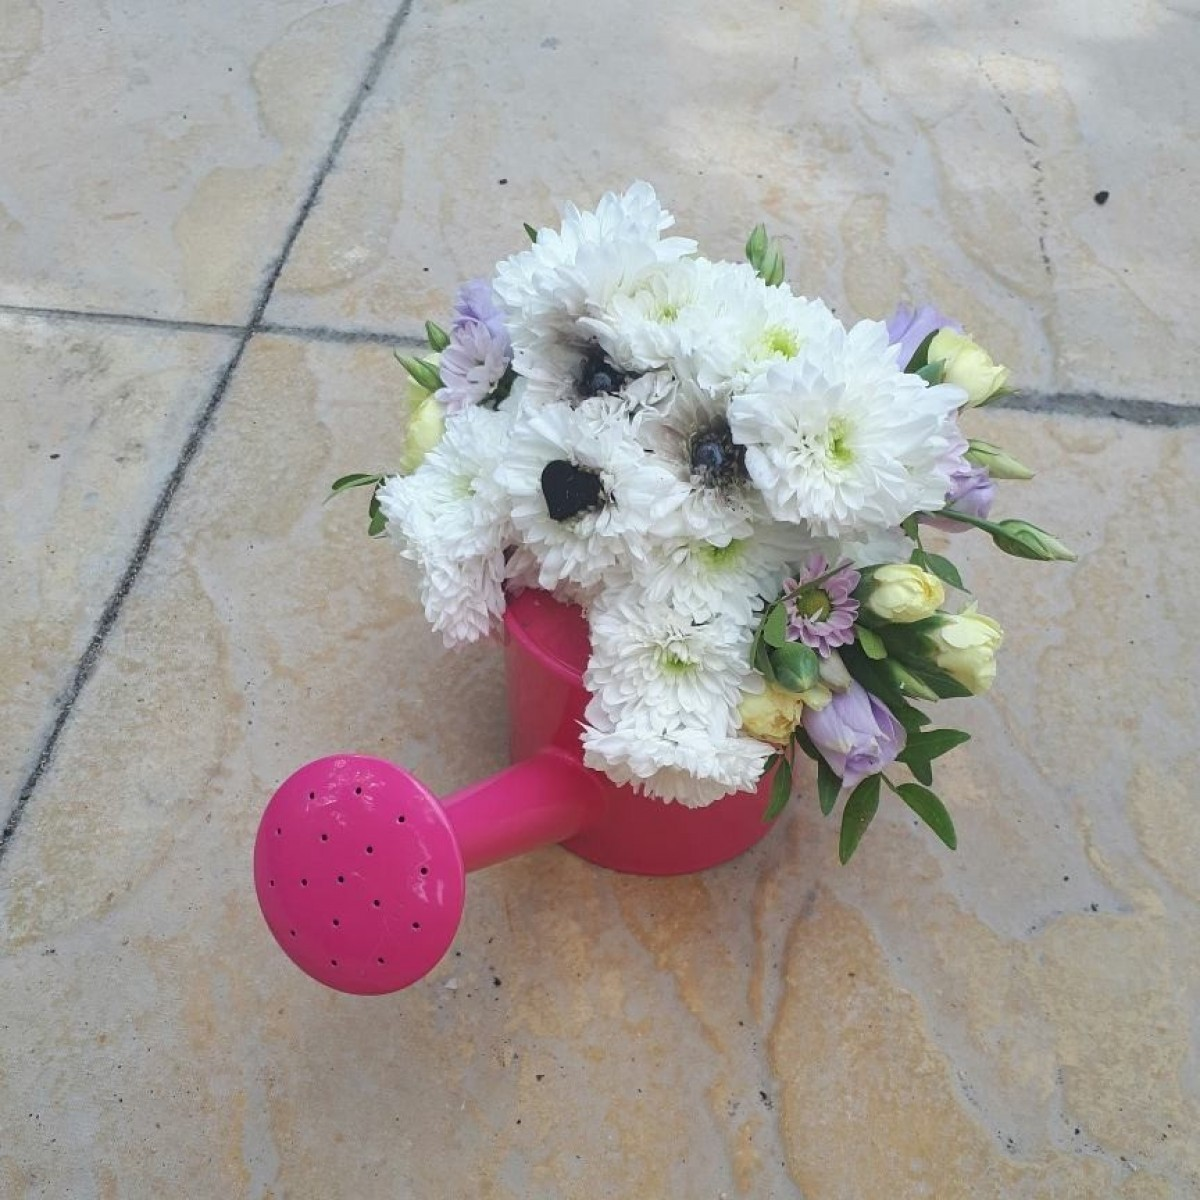 Puppy Bouquet - Mini in the Oasis Arrangements category